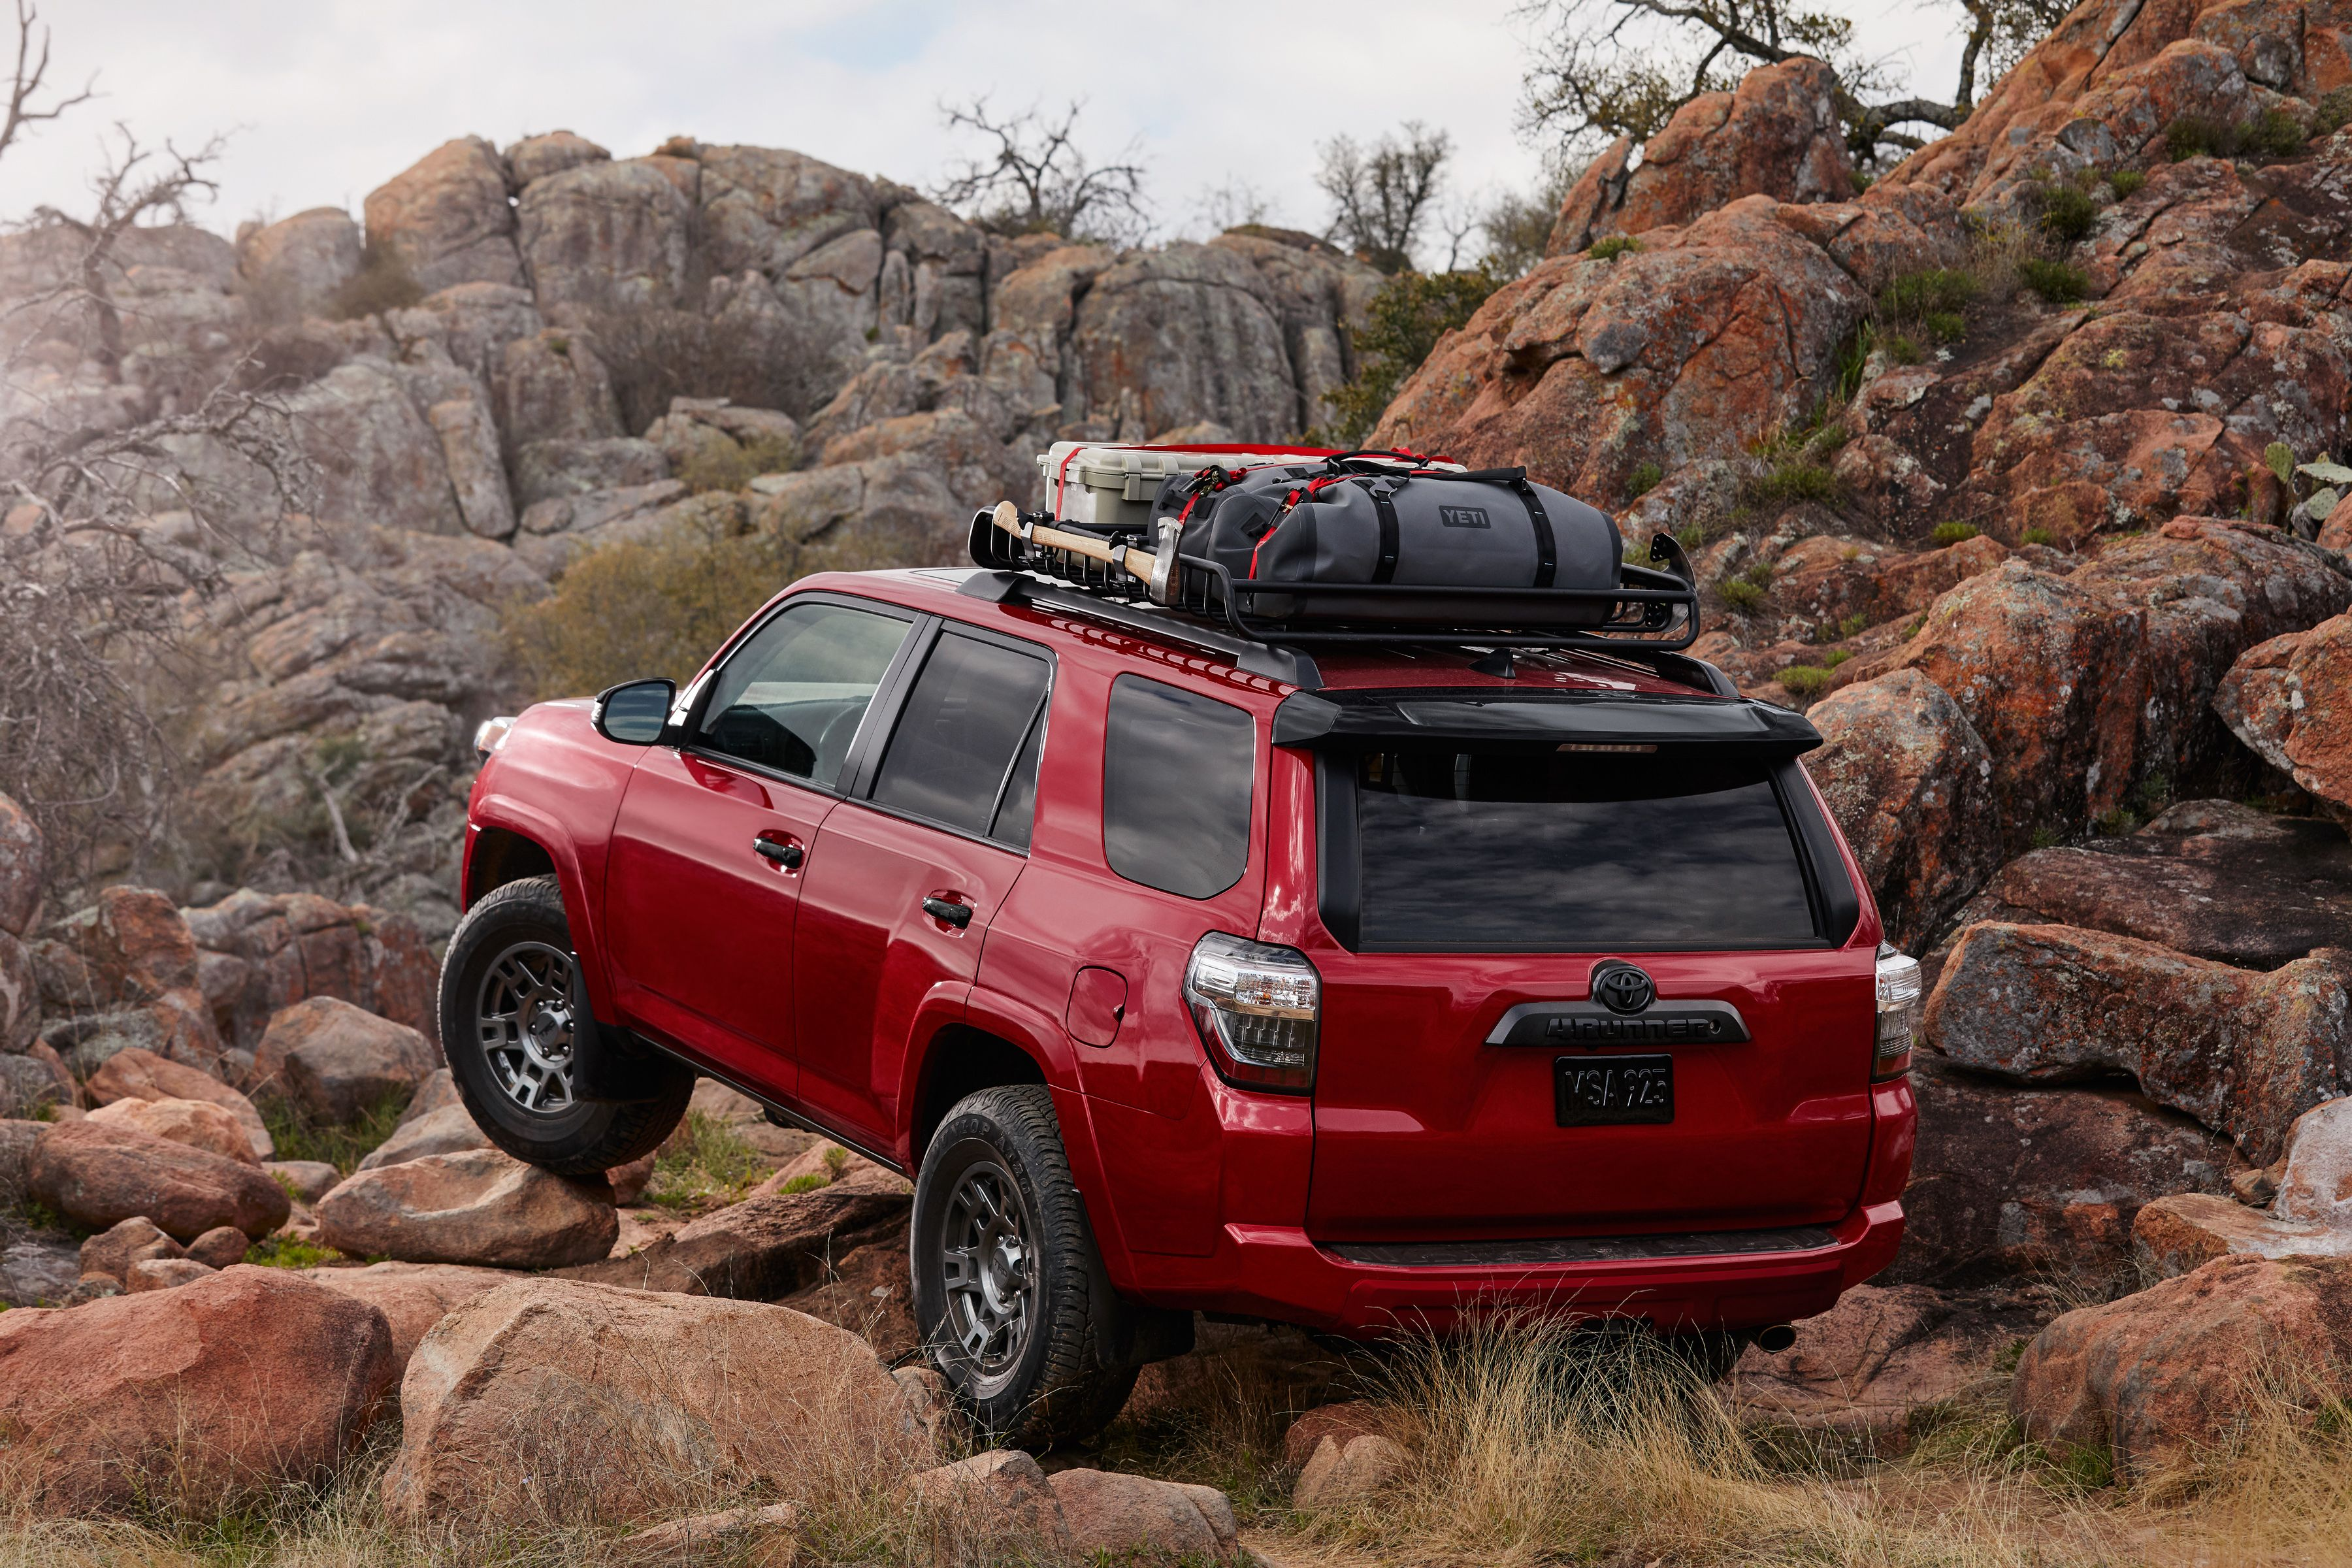 2020 Toyota 4runner Venture Edition Is For Overlanding Pack Rats